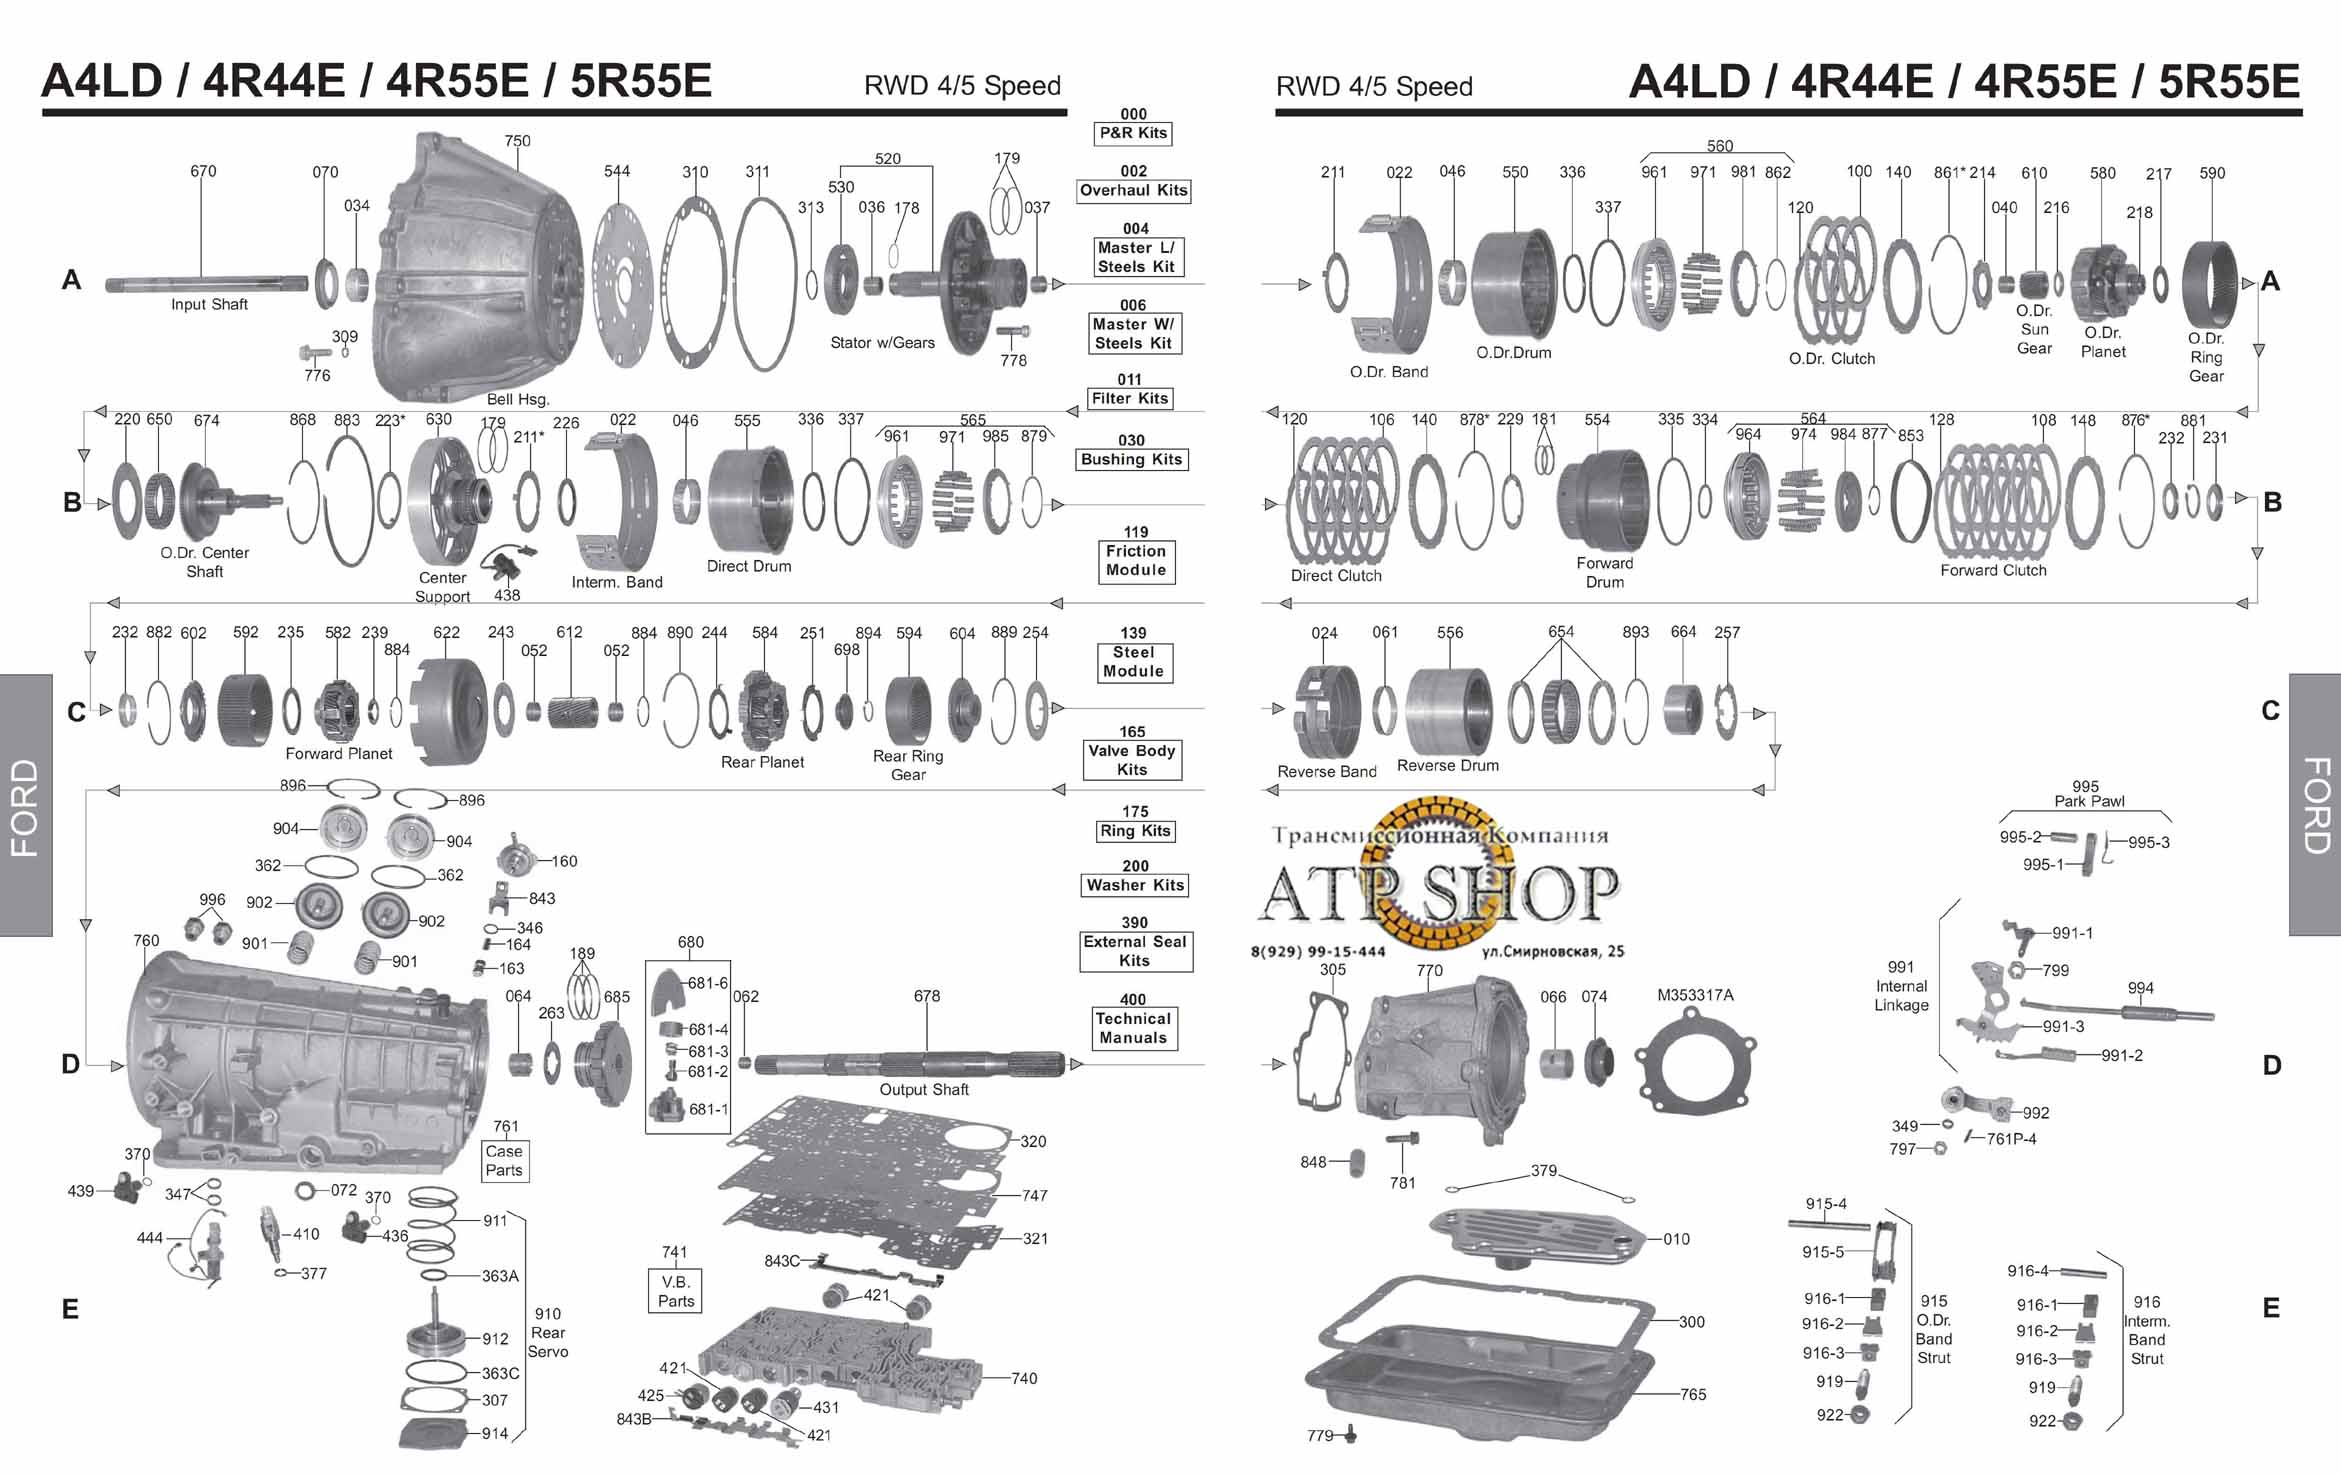 ford 4r55e wiring diagram with 5r55e Transmission Diagram on Solenoid Body Diagram besides Ford F250 Why Is My Transmission Shifting Too Hard 361579 additionally Dodge Ram Van 2500 Fuel Filter Location besides Seven  mon Problems With The Ford 4r55e Transmission furthermore 5r55e Transmission Solenoid Diagram.